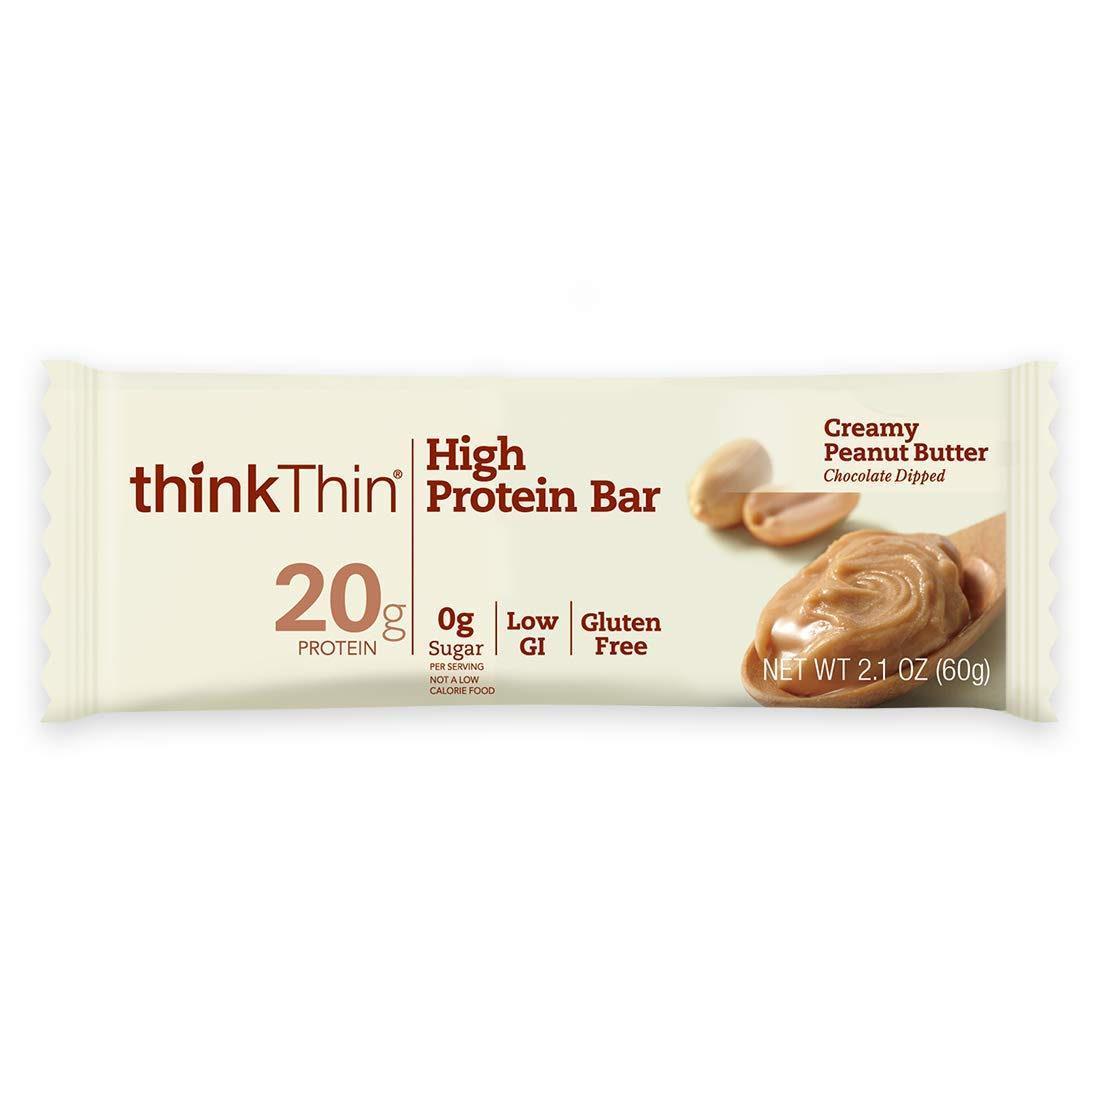 thinkThin High Protein Bars - Creamy Peanut Butter, 20g Protein, Low Sugar, Low Net Carbs, No Artificial Sweetners, Gluten Free, GMO Free, Nutritional Snack/Meal Bar, 10 Count